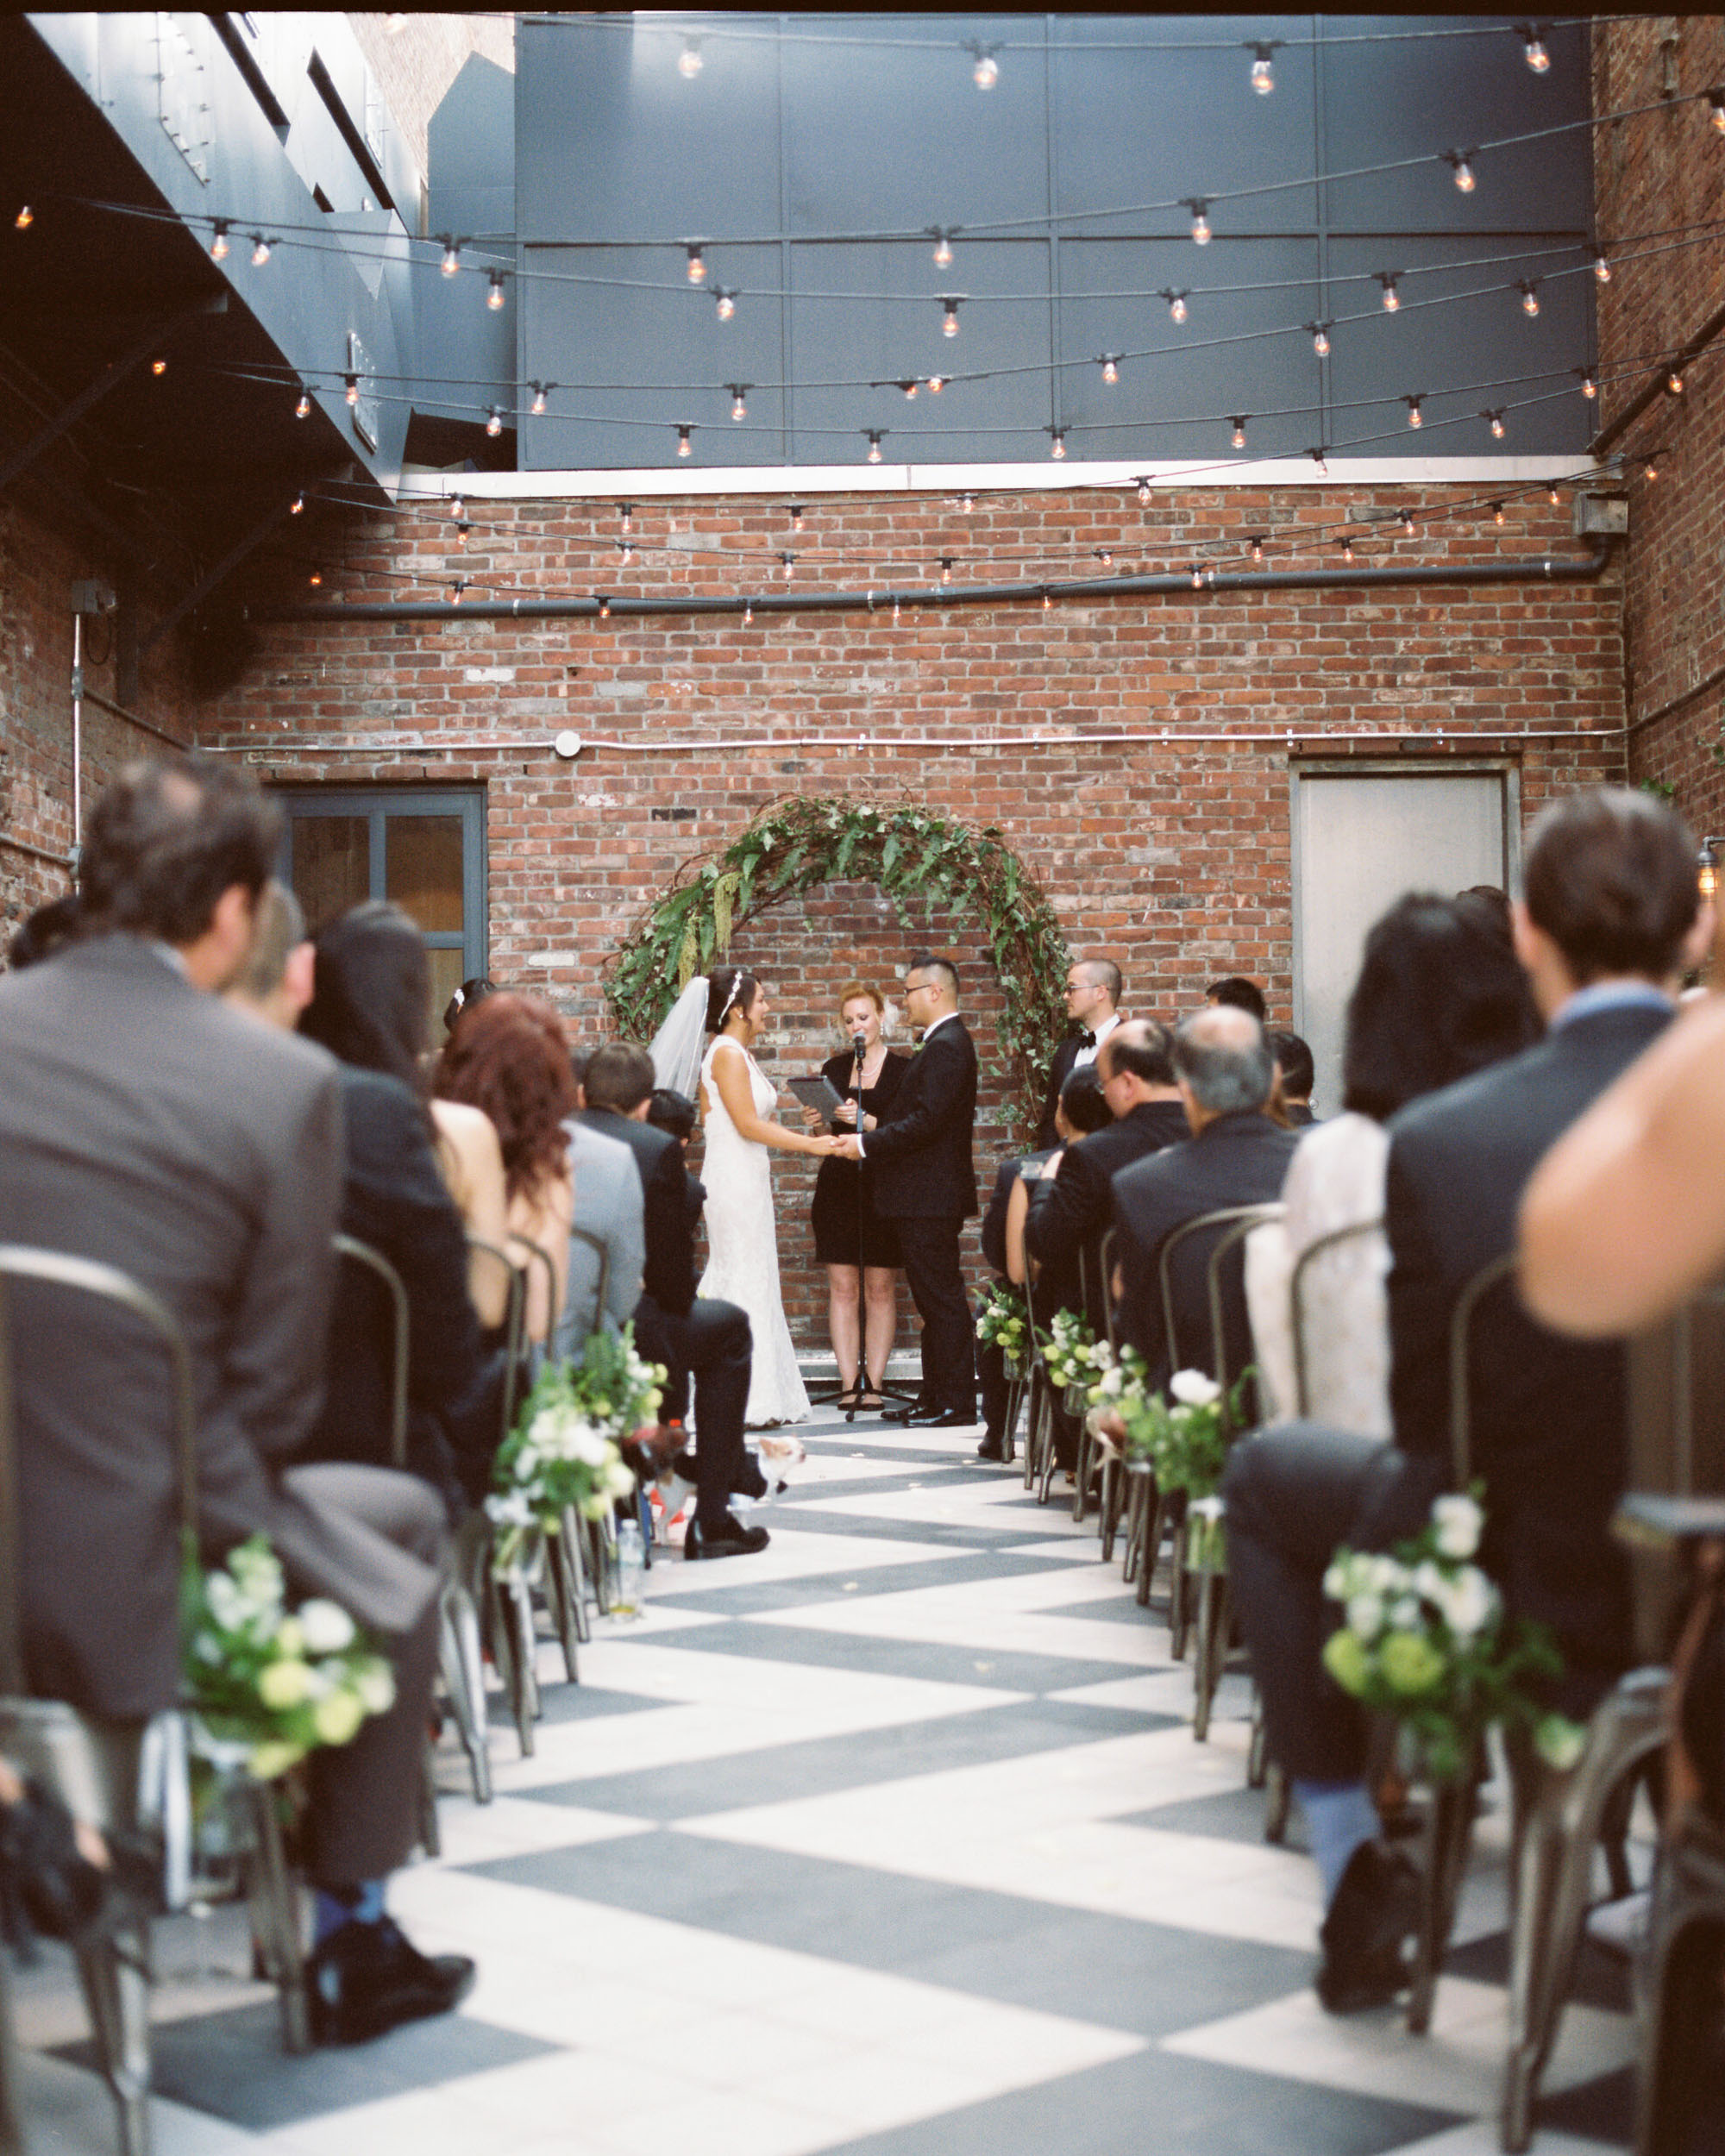 Wythe Hotel Wedding Photographer 165 - Wythe Hotel